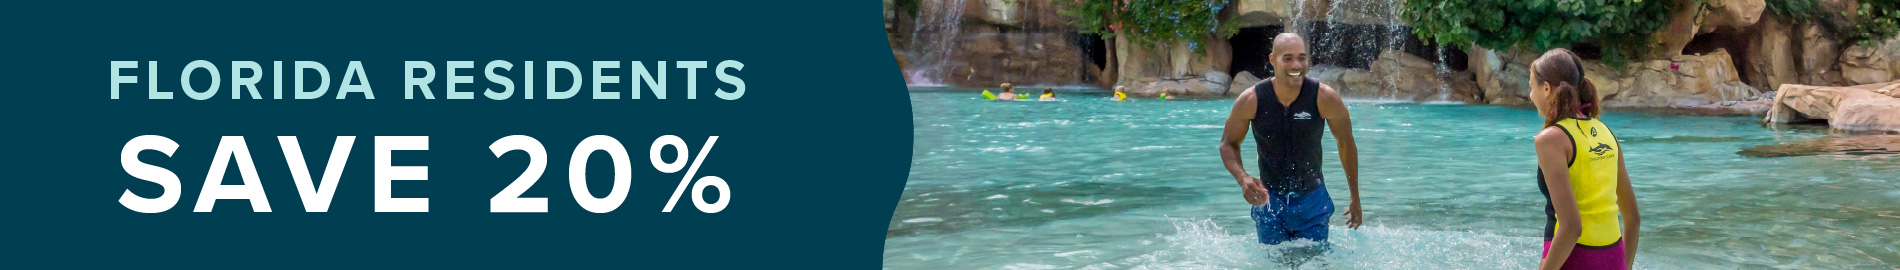 Discovery Cove Florida Residents Book Now